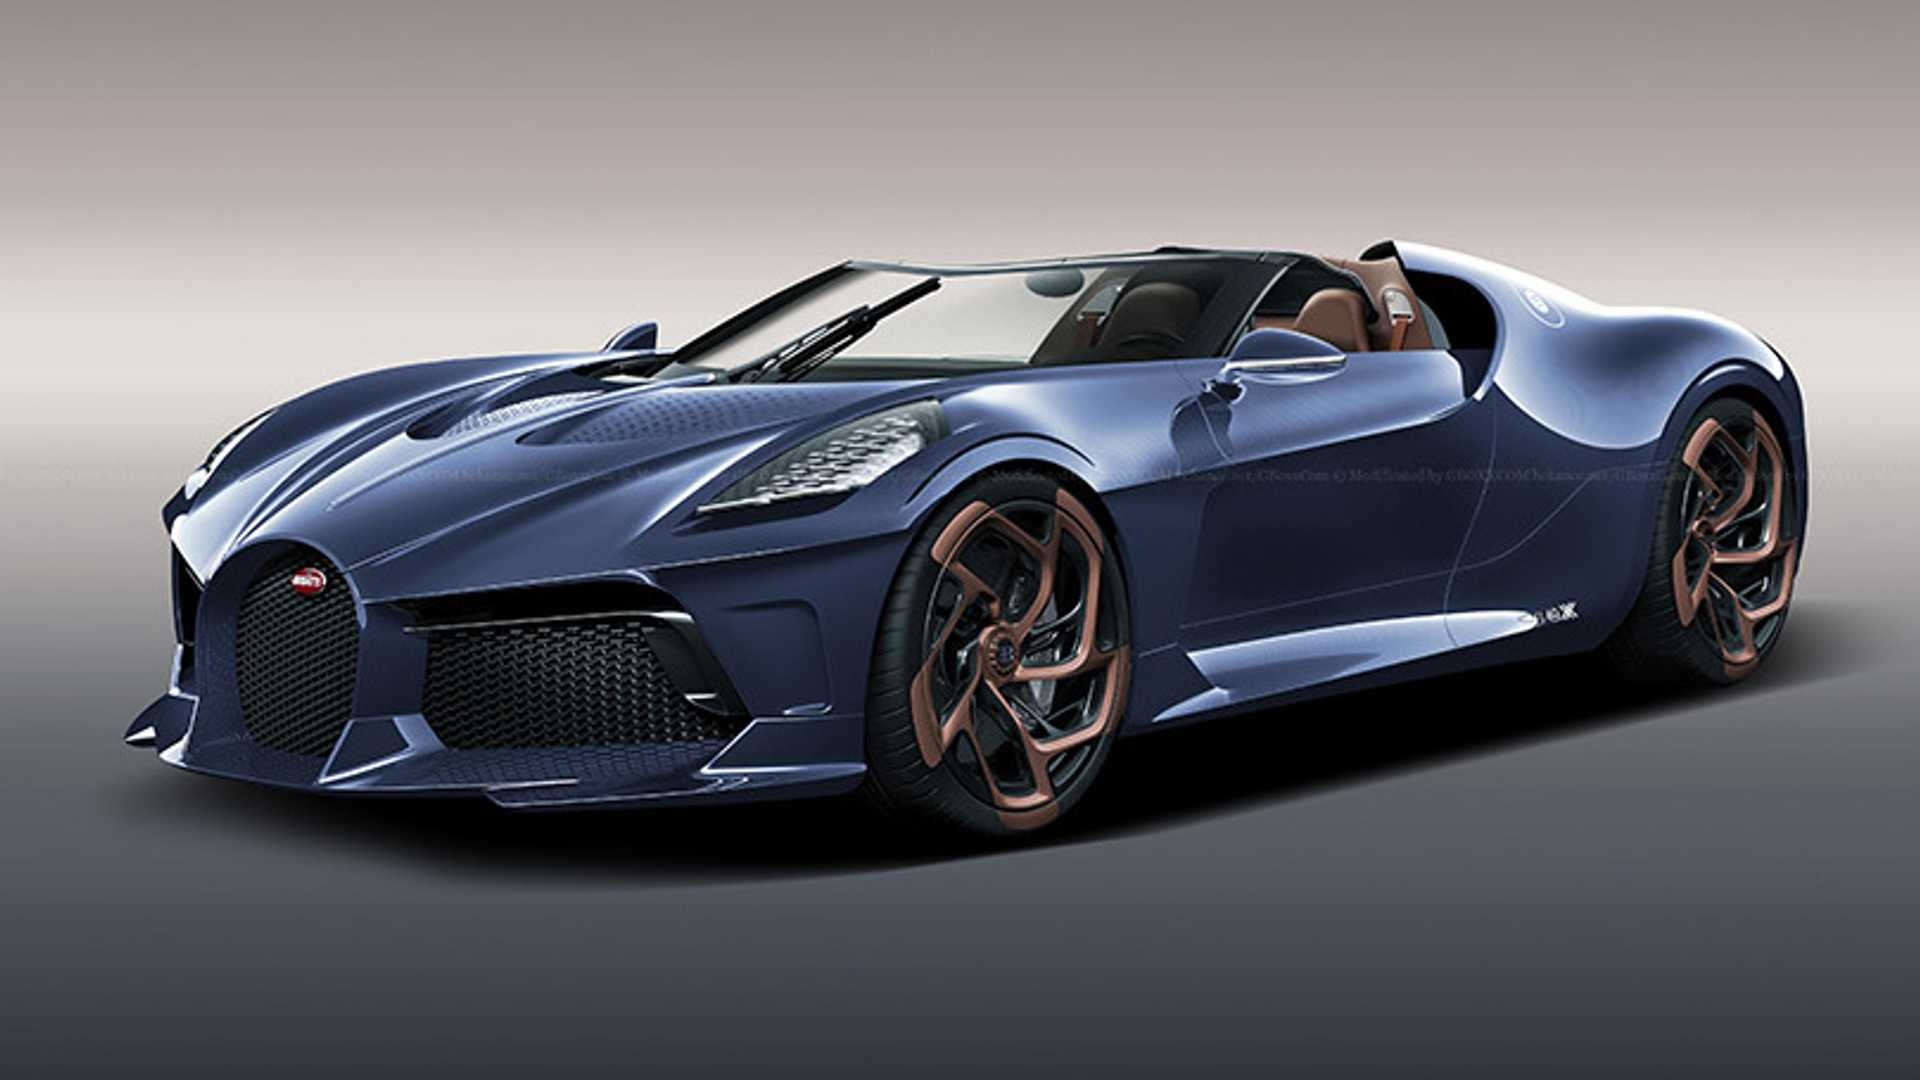 New £12M Bugatti hypercar – see why it's the MOST EXPENSIVE car in the world!